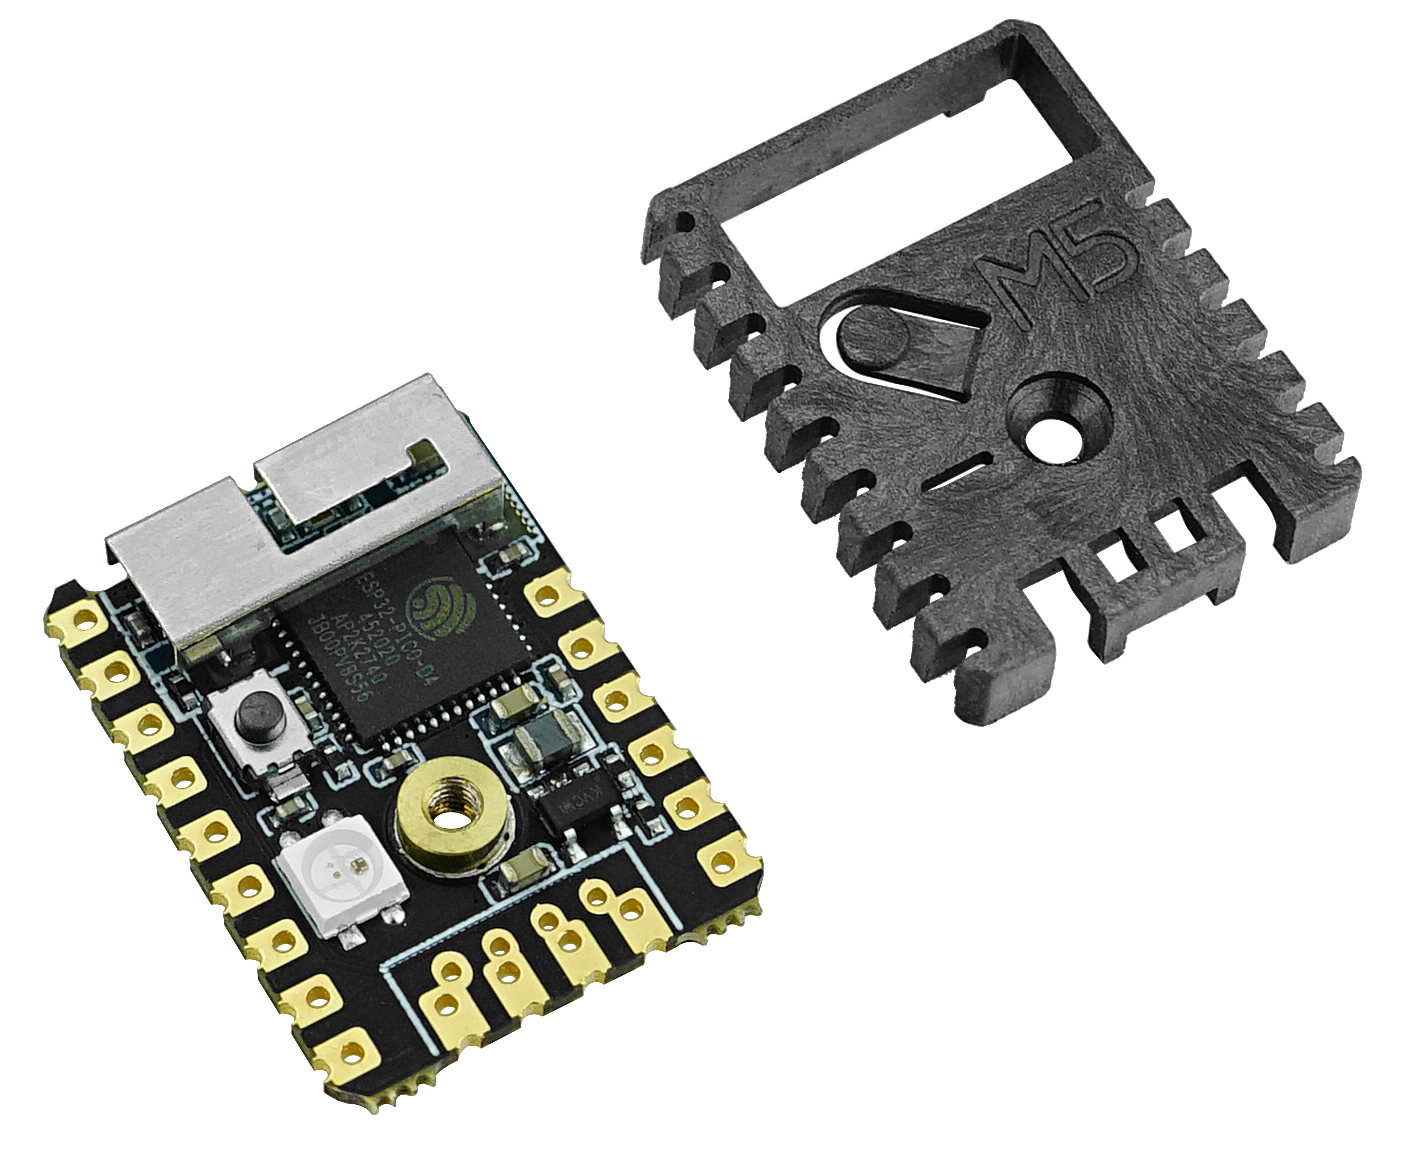 M5Stack's New Cost-effective 'plug-and-play' ESP32 miniature module – STAMP PICO